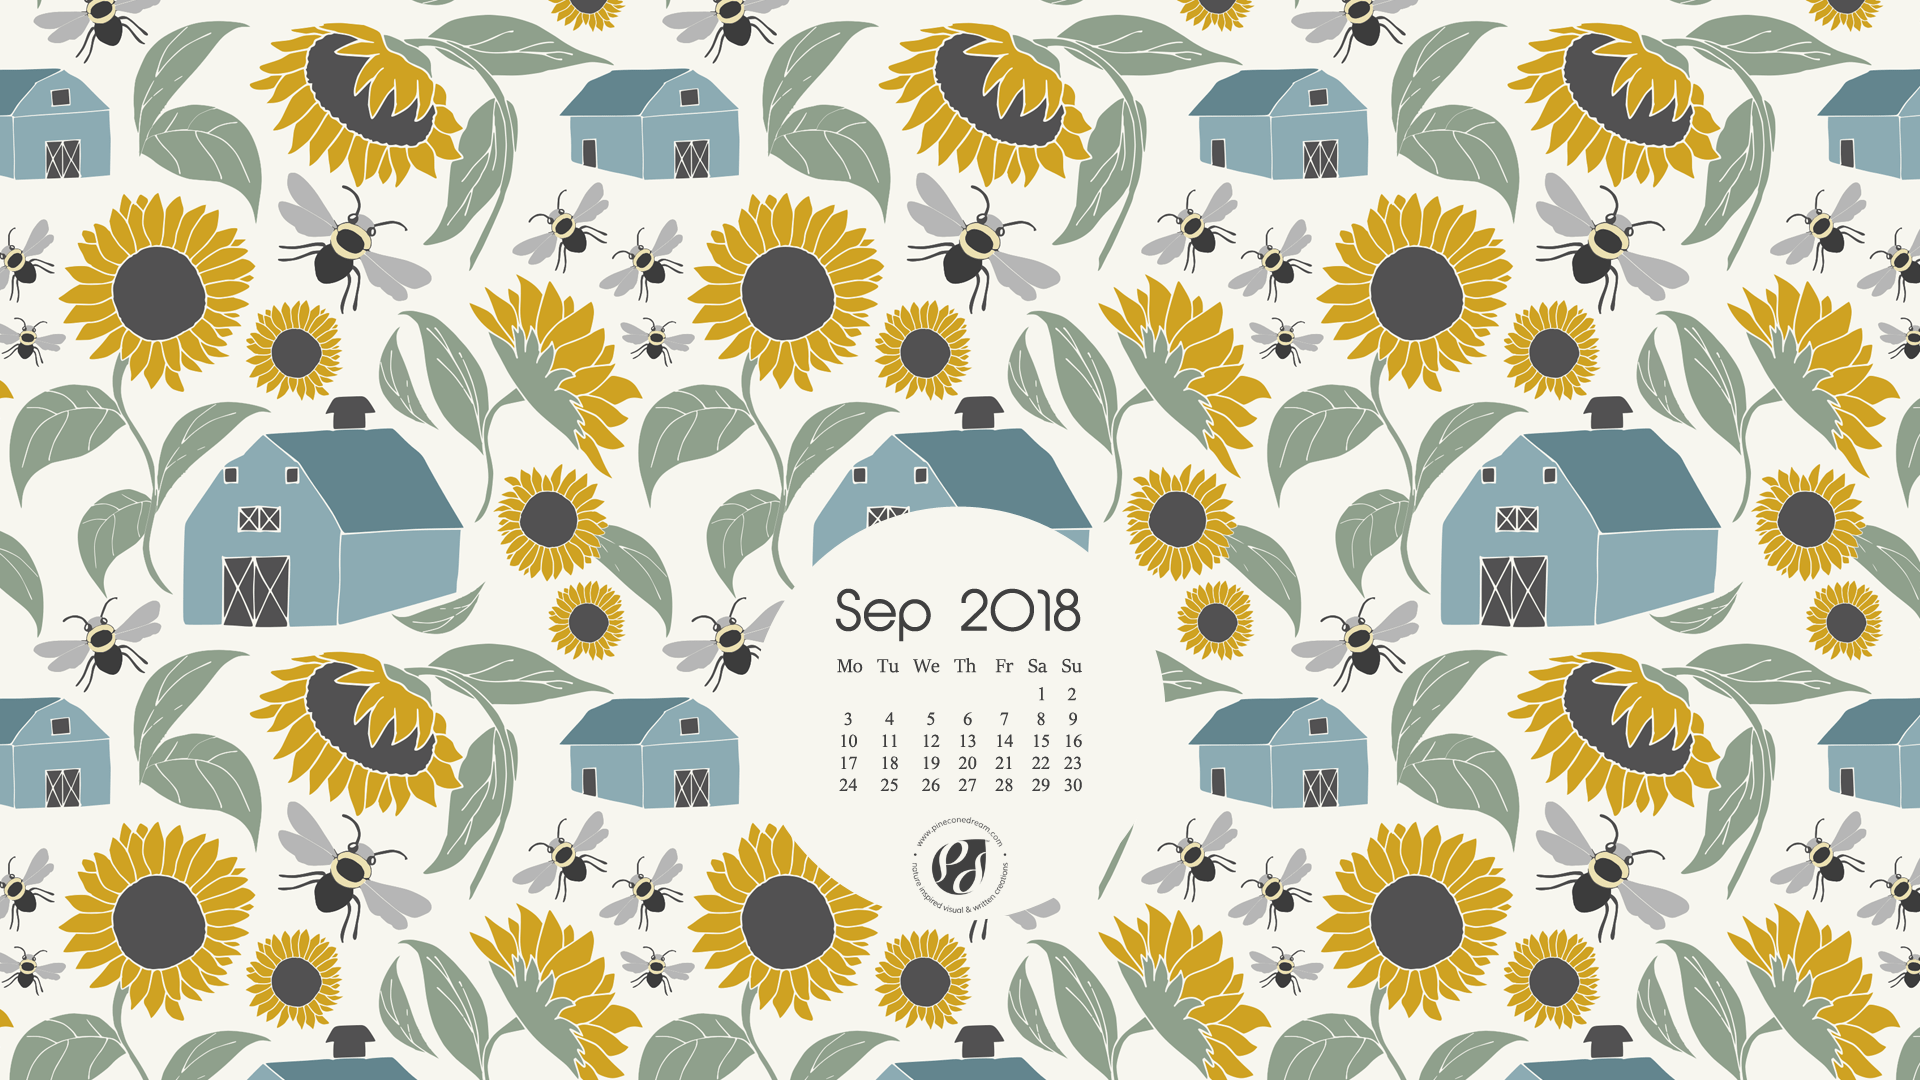 September 2018 Free Wallpapers/Calendars & Printable Planner, illustrated – At Sunflower Farm!